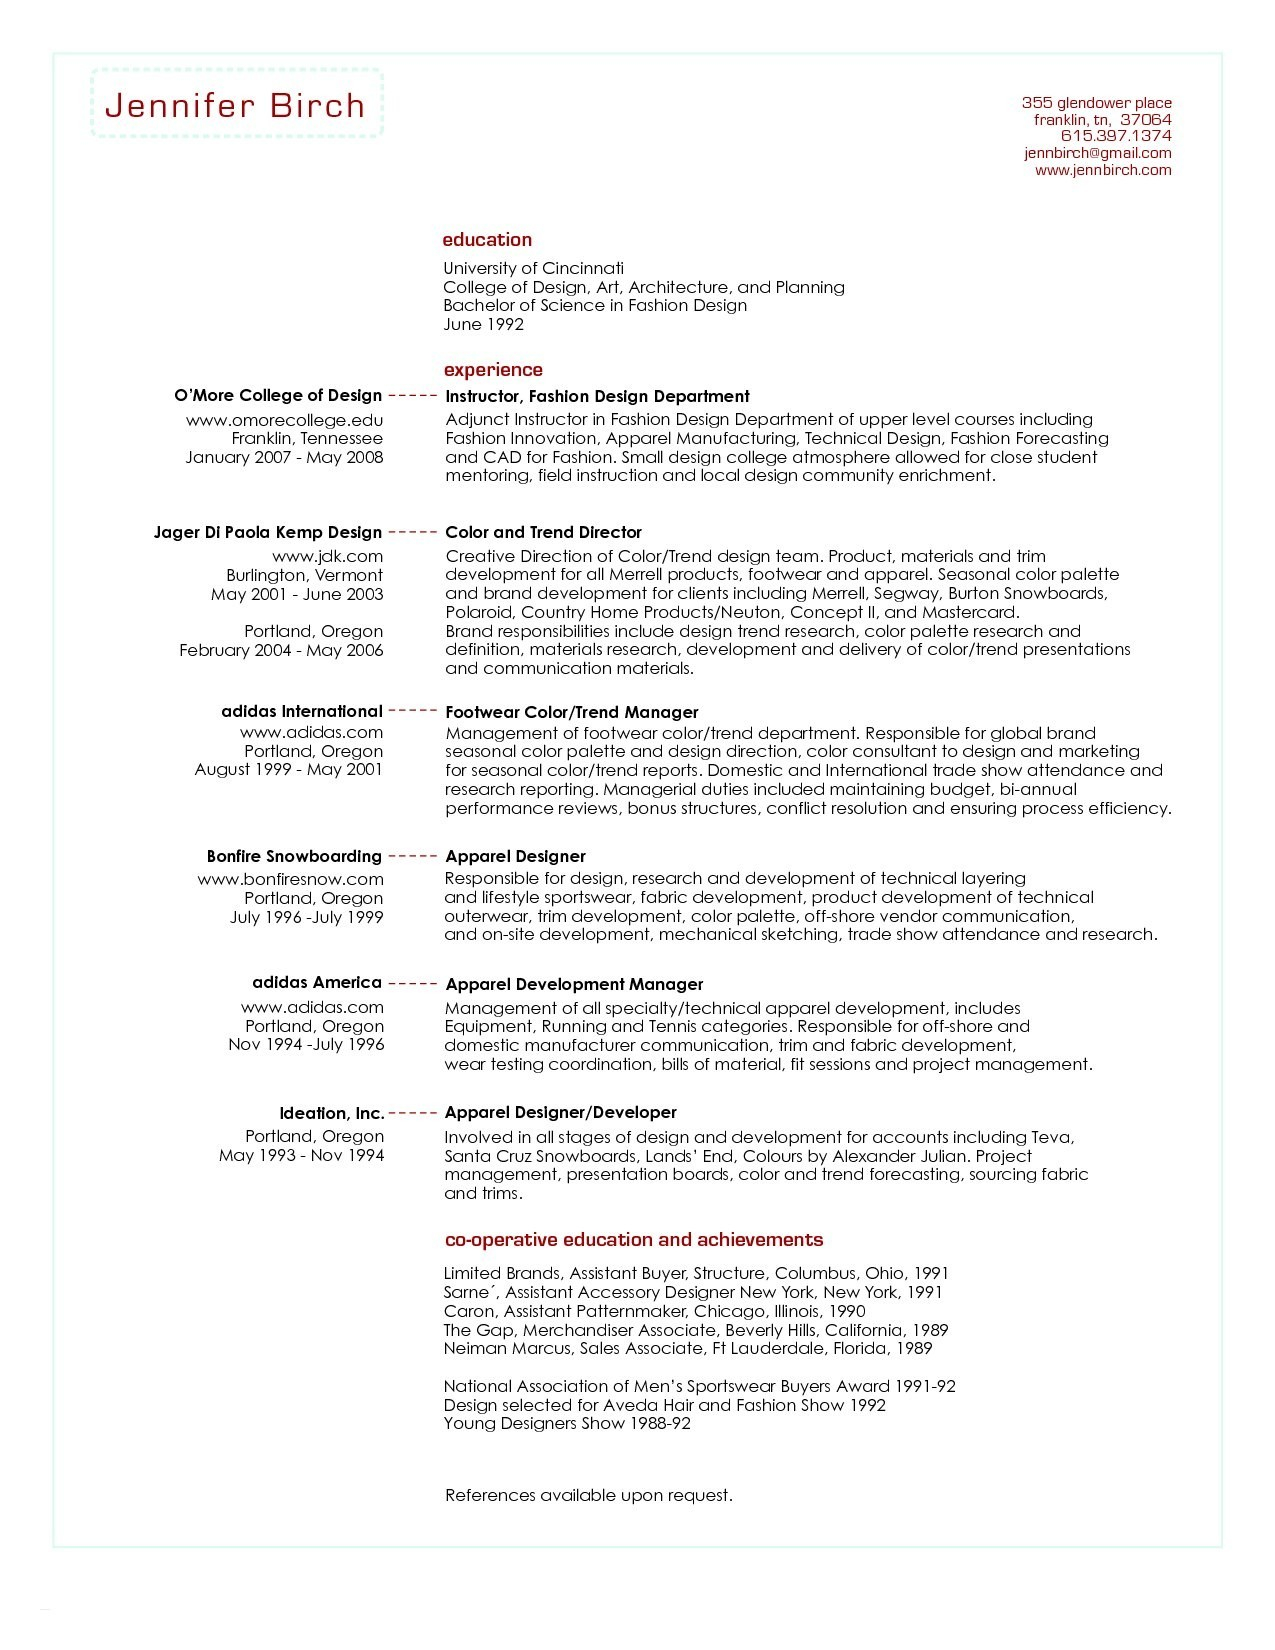 Event Resume Template - Store Manager Resume Sample Elegant It Manager Resume Template